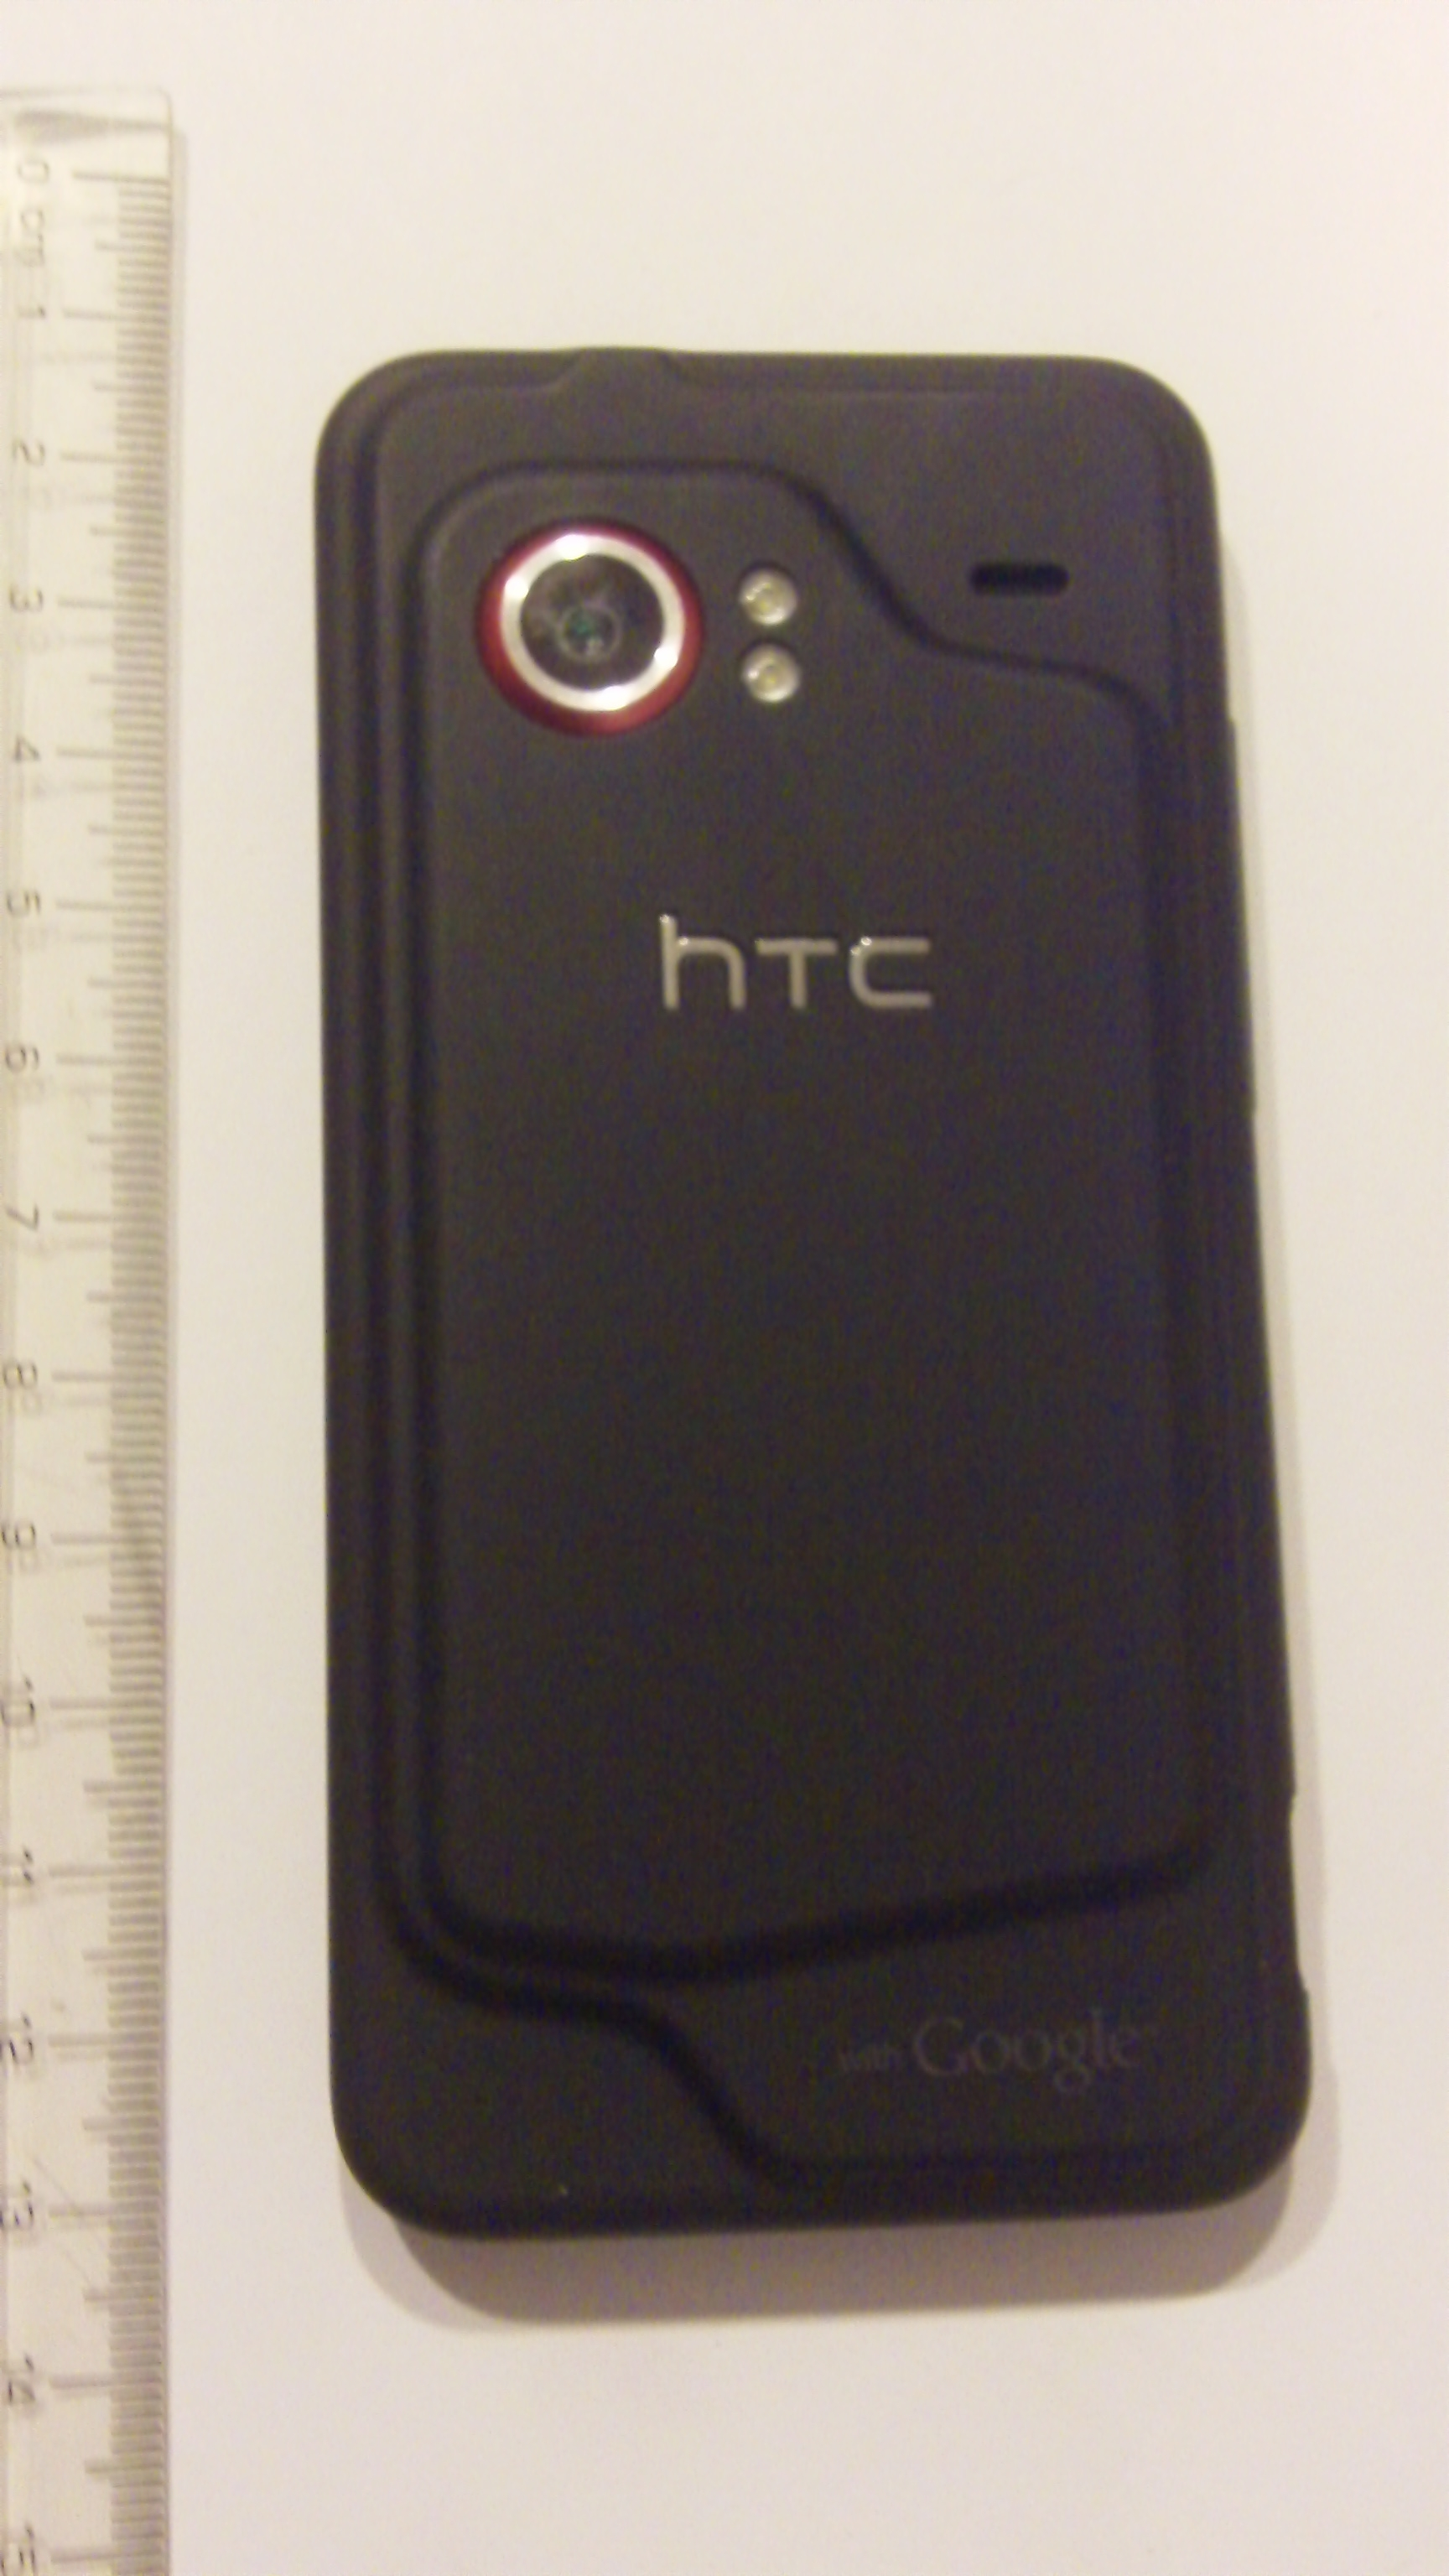 HTC DROID INCREDIBLE 2 USB DRIVERS DOWNLOAD